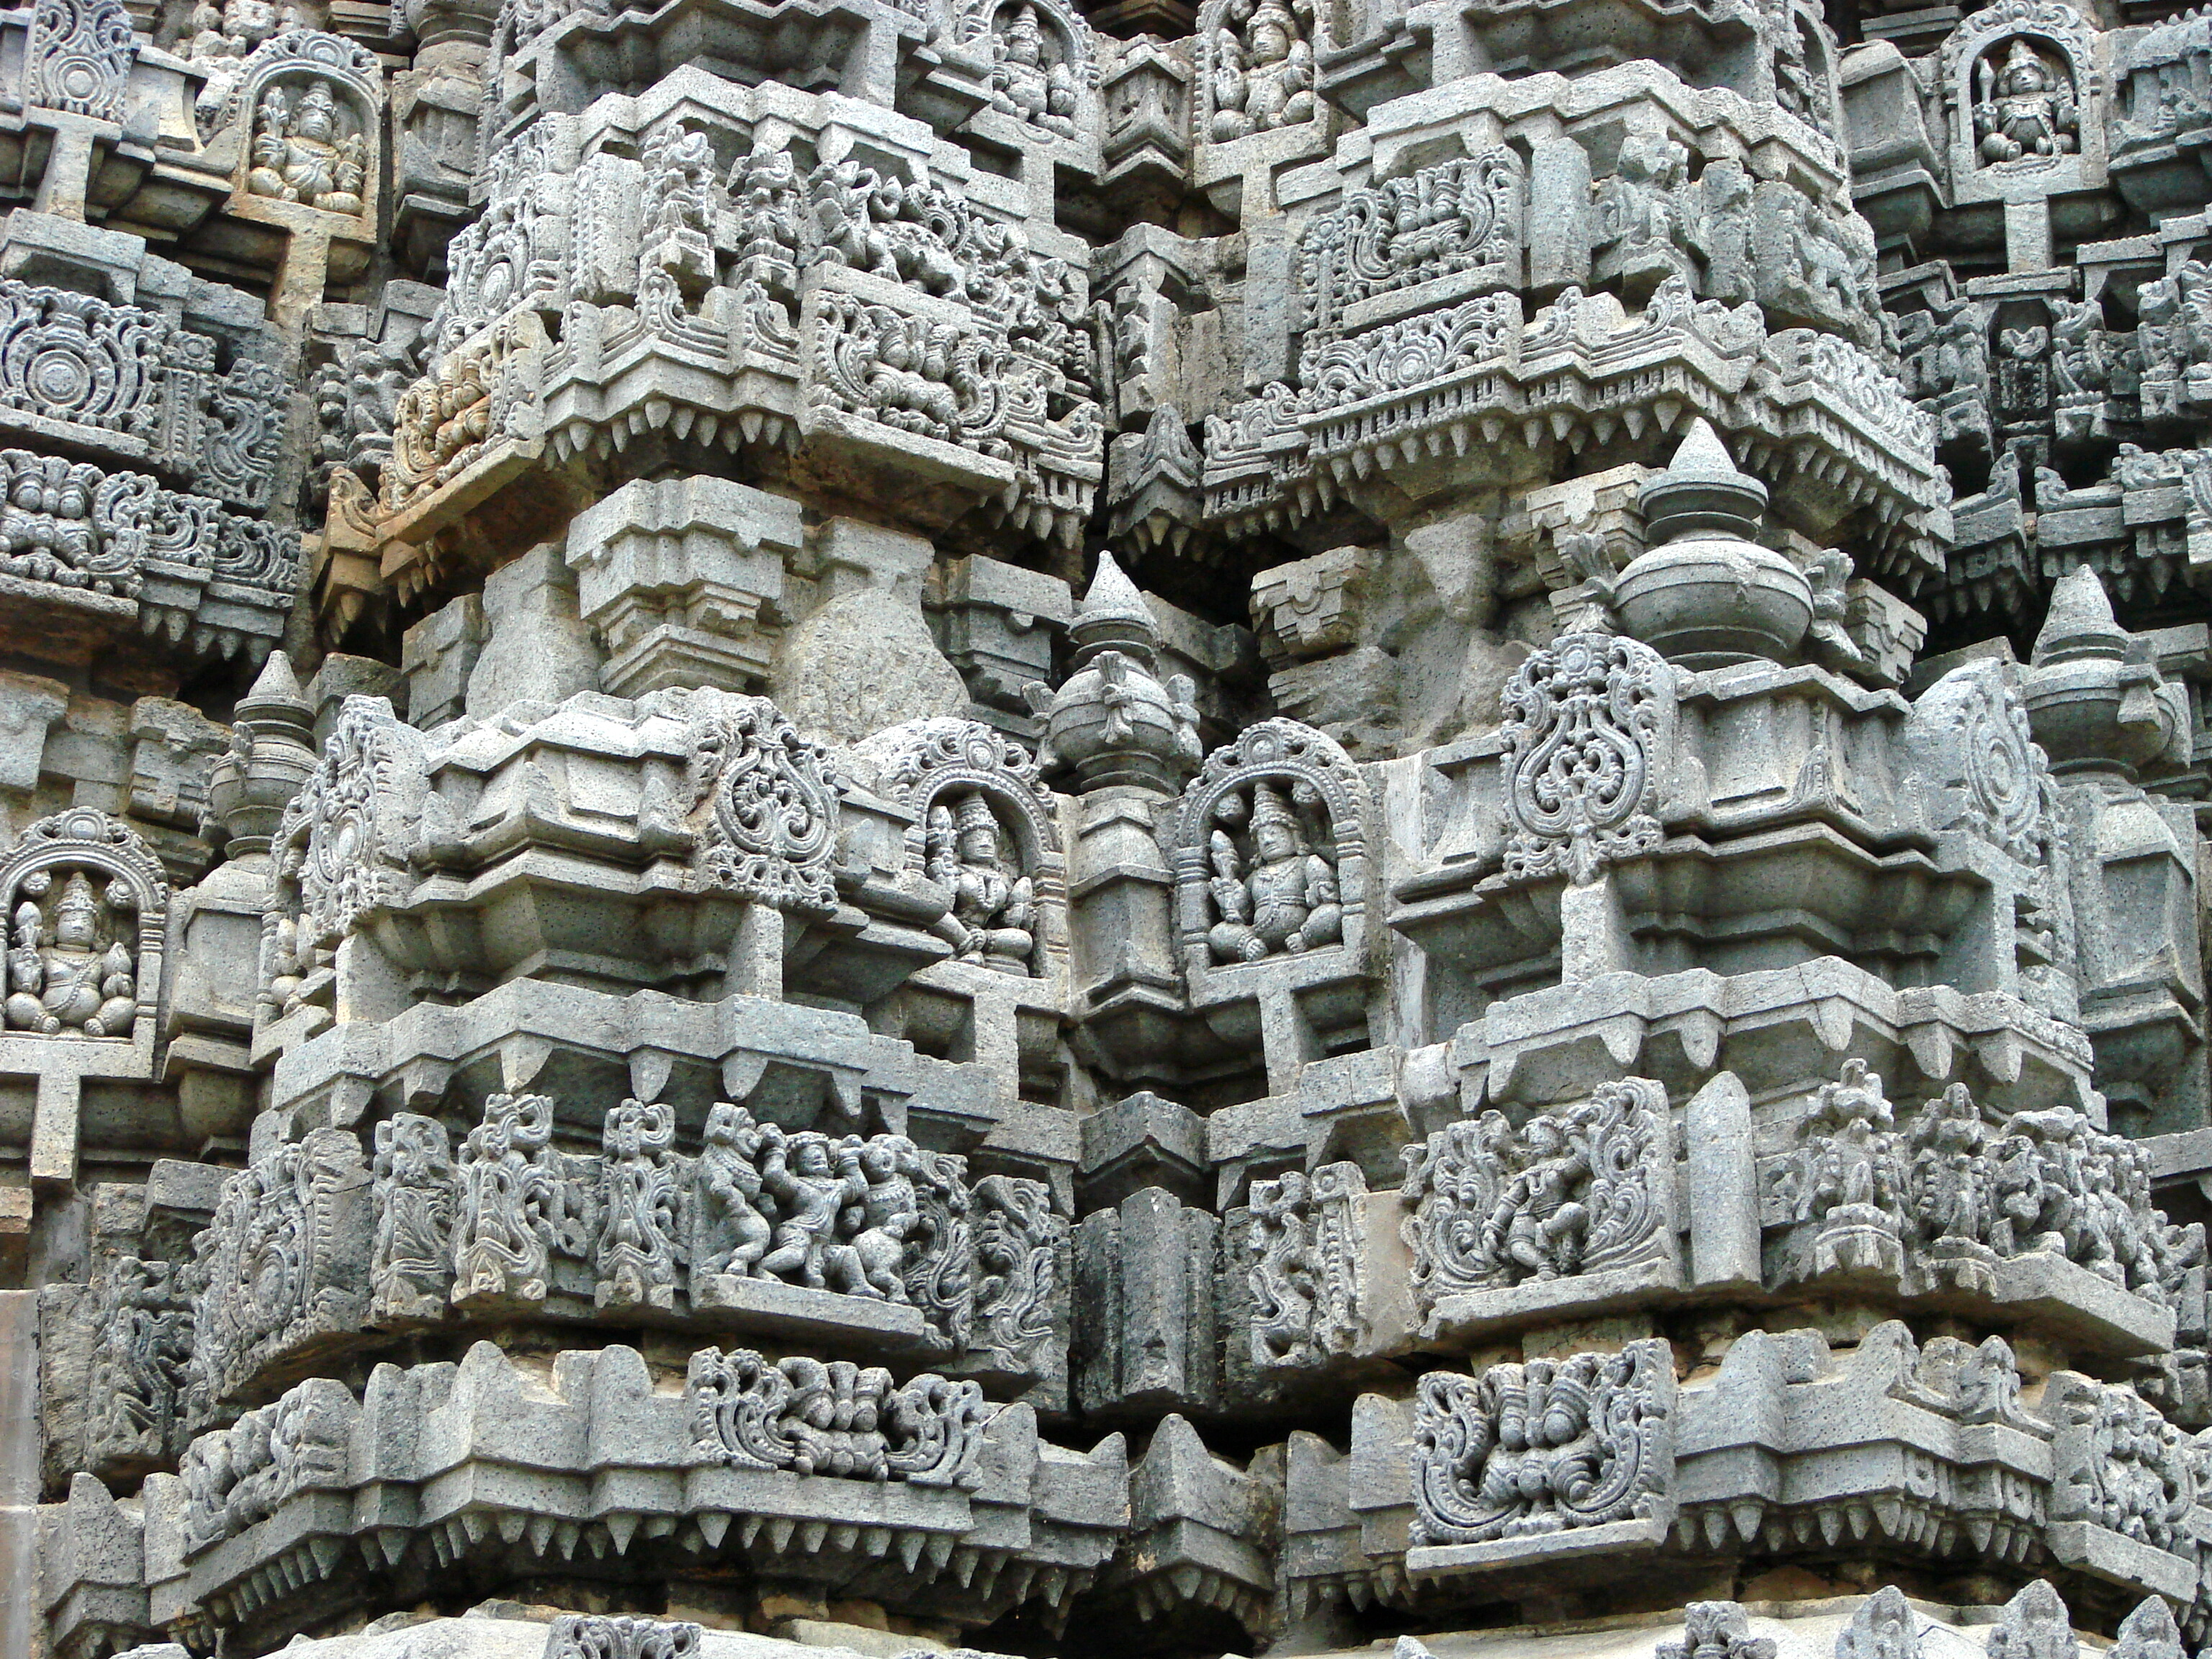 Index additionally File Relief carvings on vesara tower over shrine in Chennakeshava temple at Somanathapura near Mysore  India further Showcase also Carving A Tudor Rose Introduction also Battle Of The Roses Carving A Flower. on relief stone carving